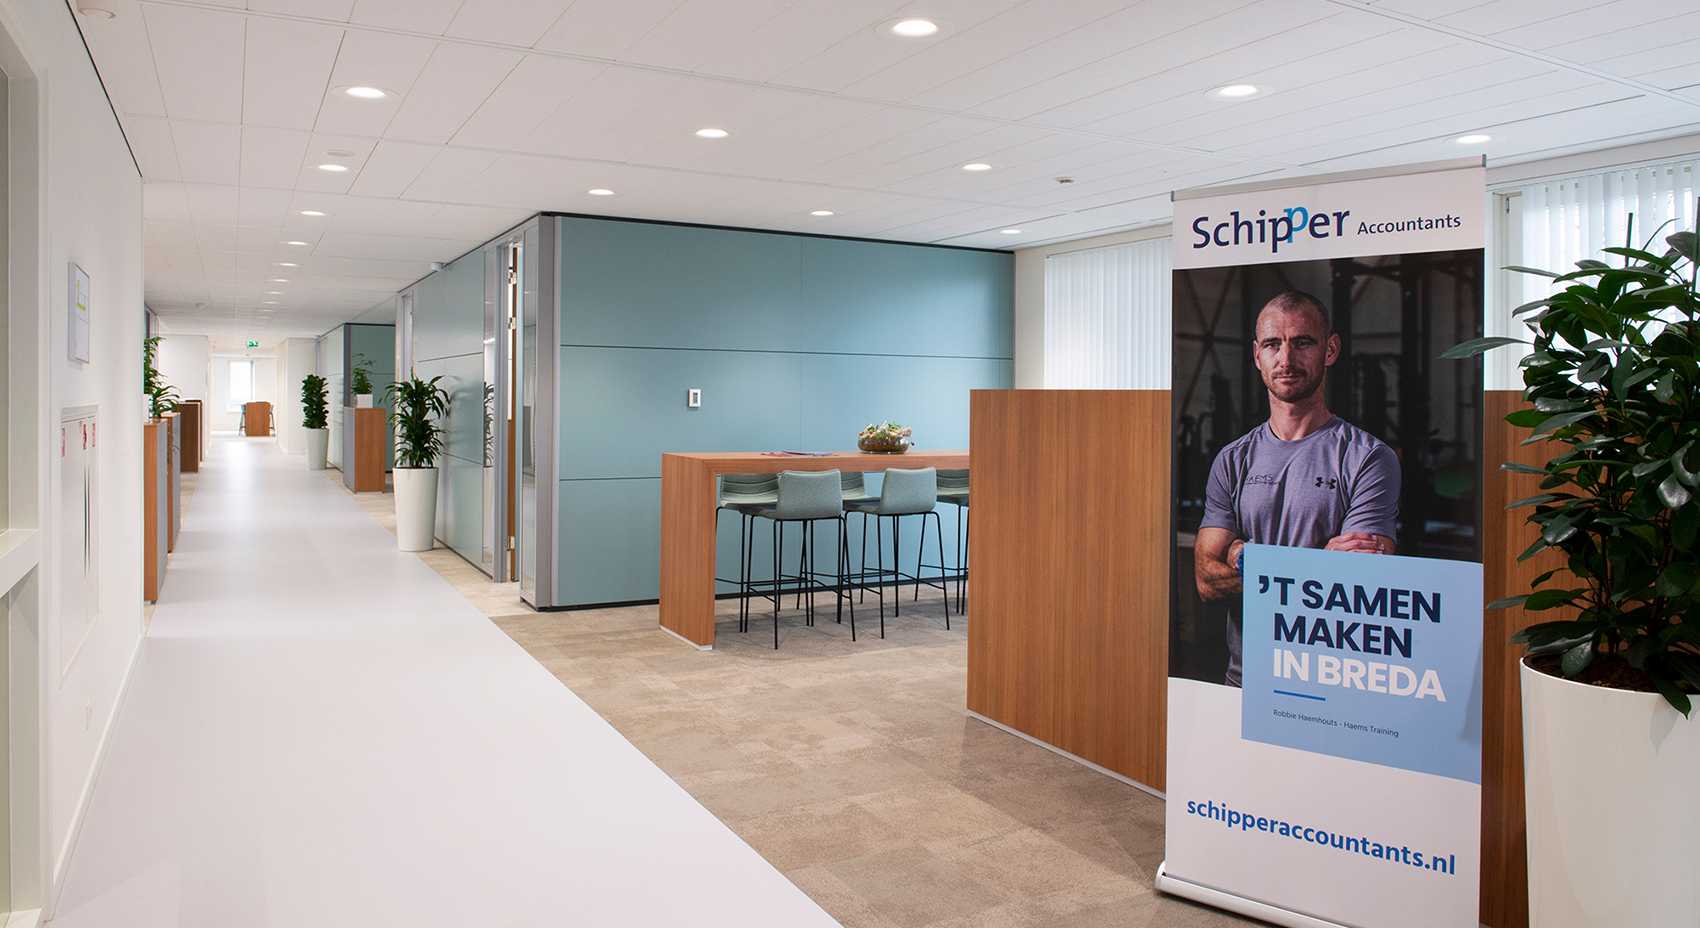 Schipper Accountants, Pays-Bas